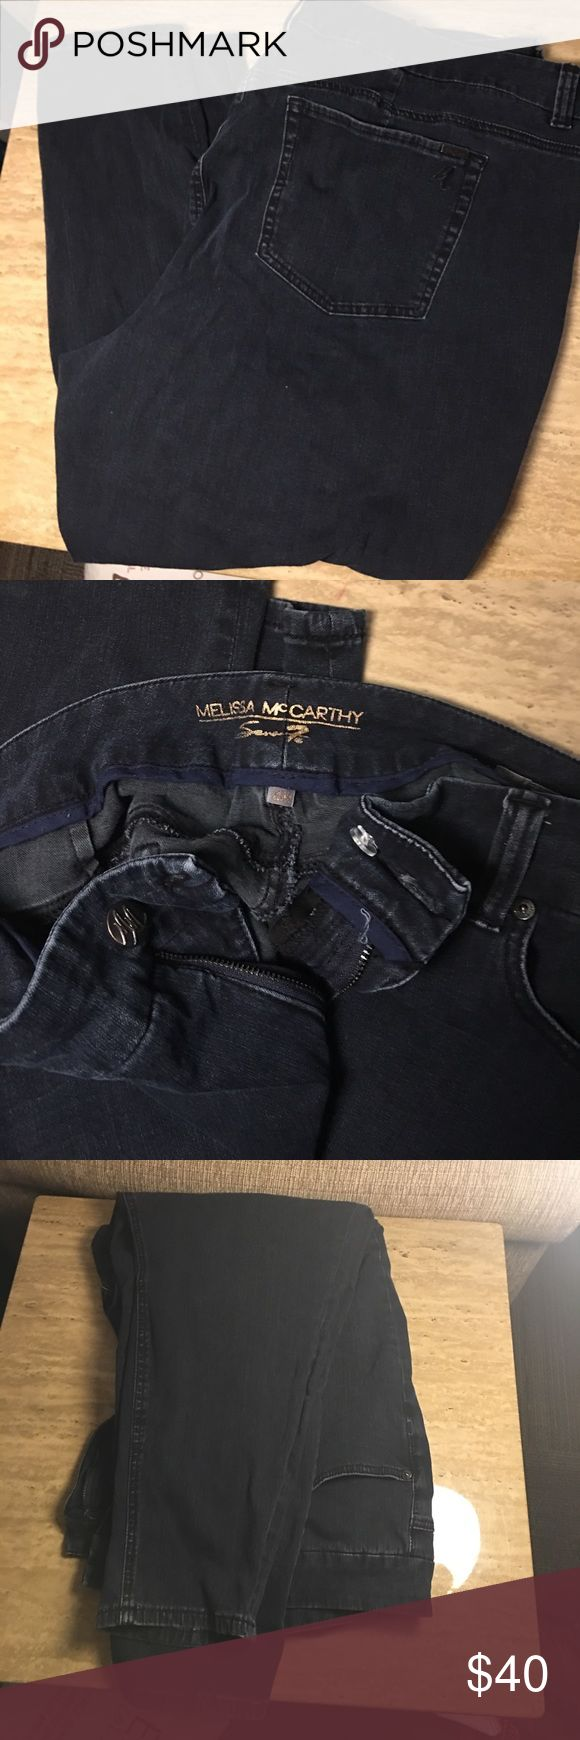 Melissa McCarthy 4 way stretch skinny jeans. Lane Bryant 4 way stretch Seven Brand Melissa McCarthy Jeans. Dark Blue rinse. Skinny jeans. Worn and washed 3 times. Very comfortable! Melissa McCarthy Jeans Skinny